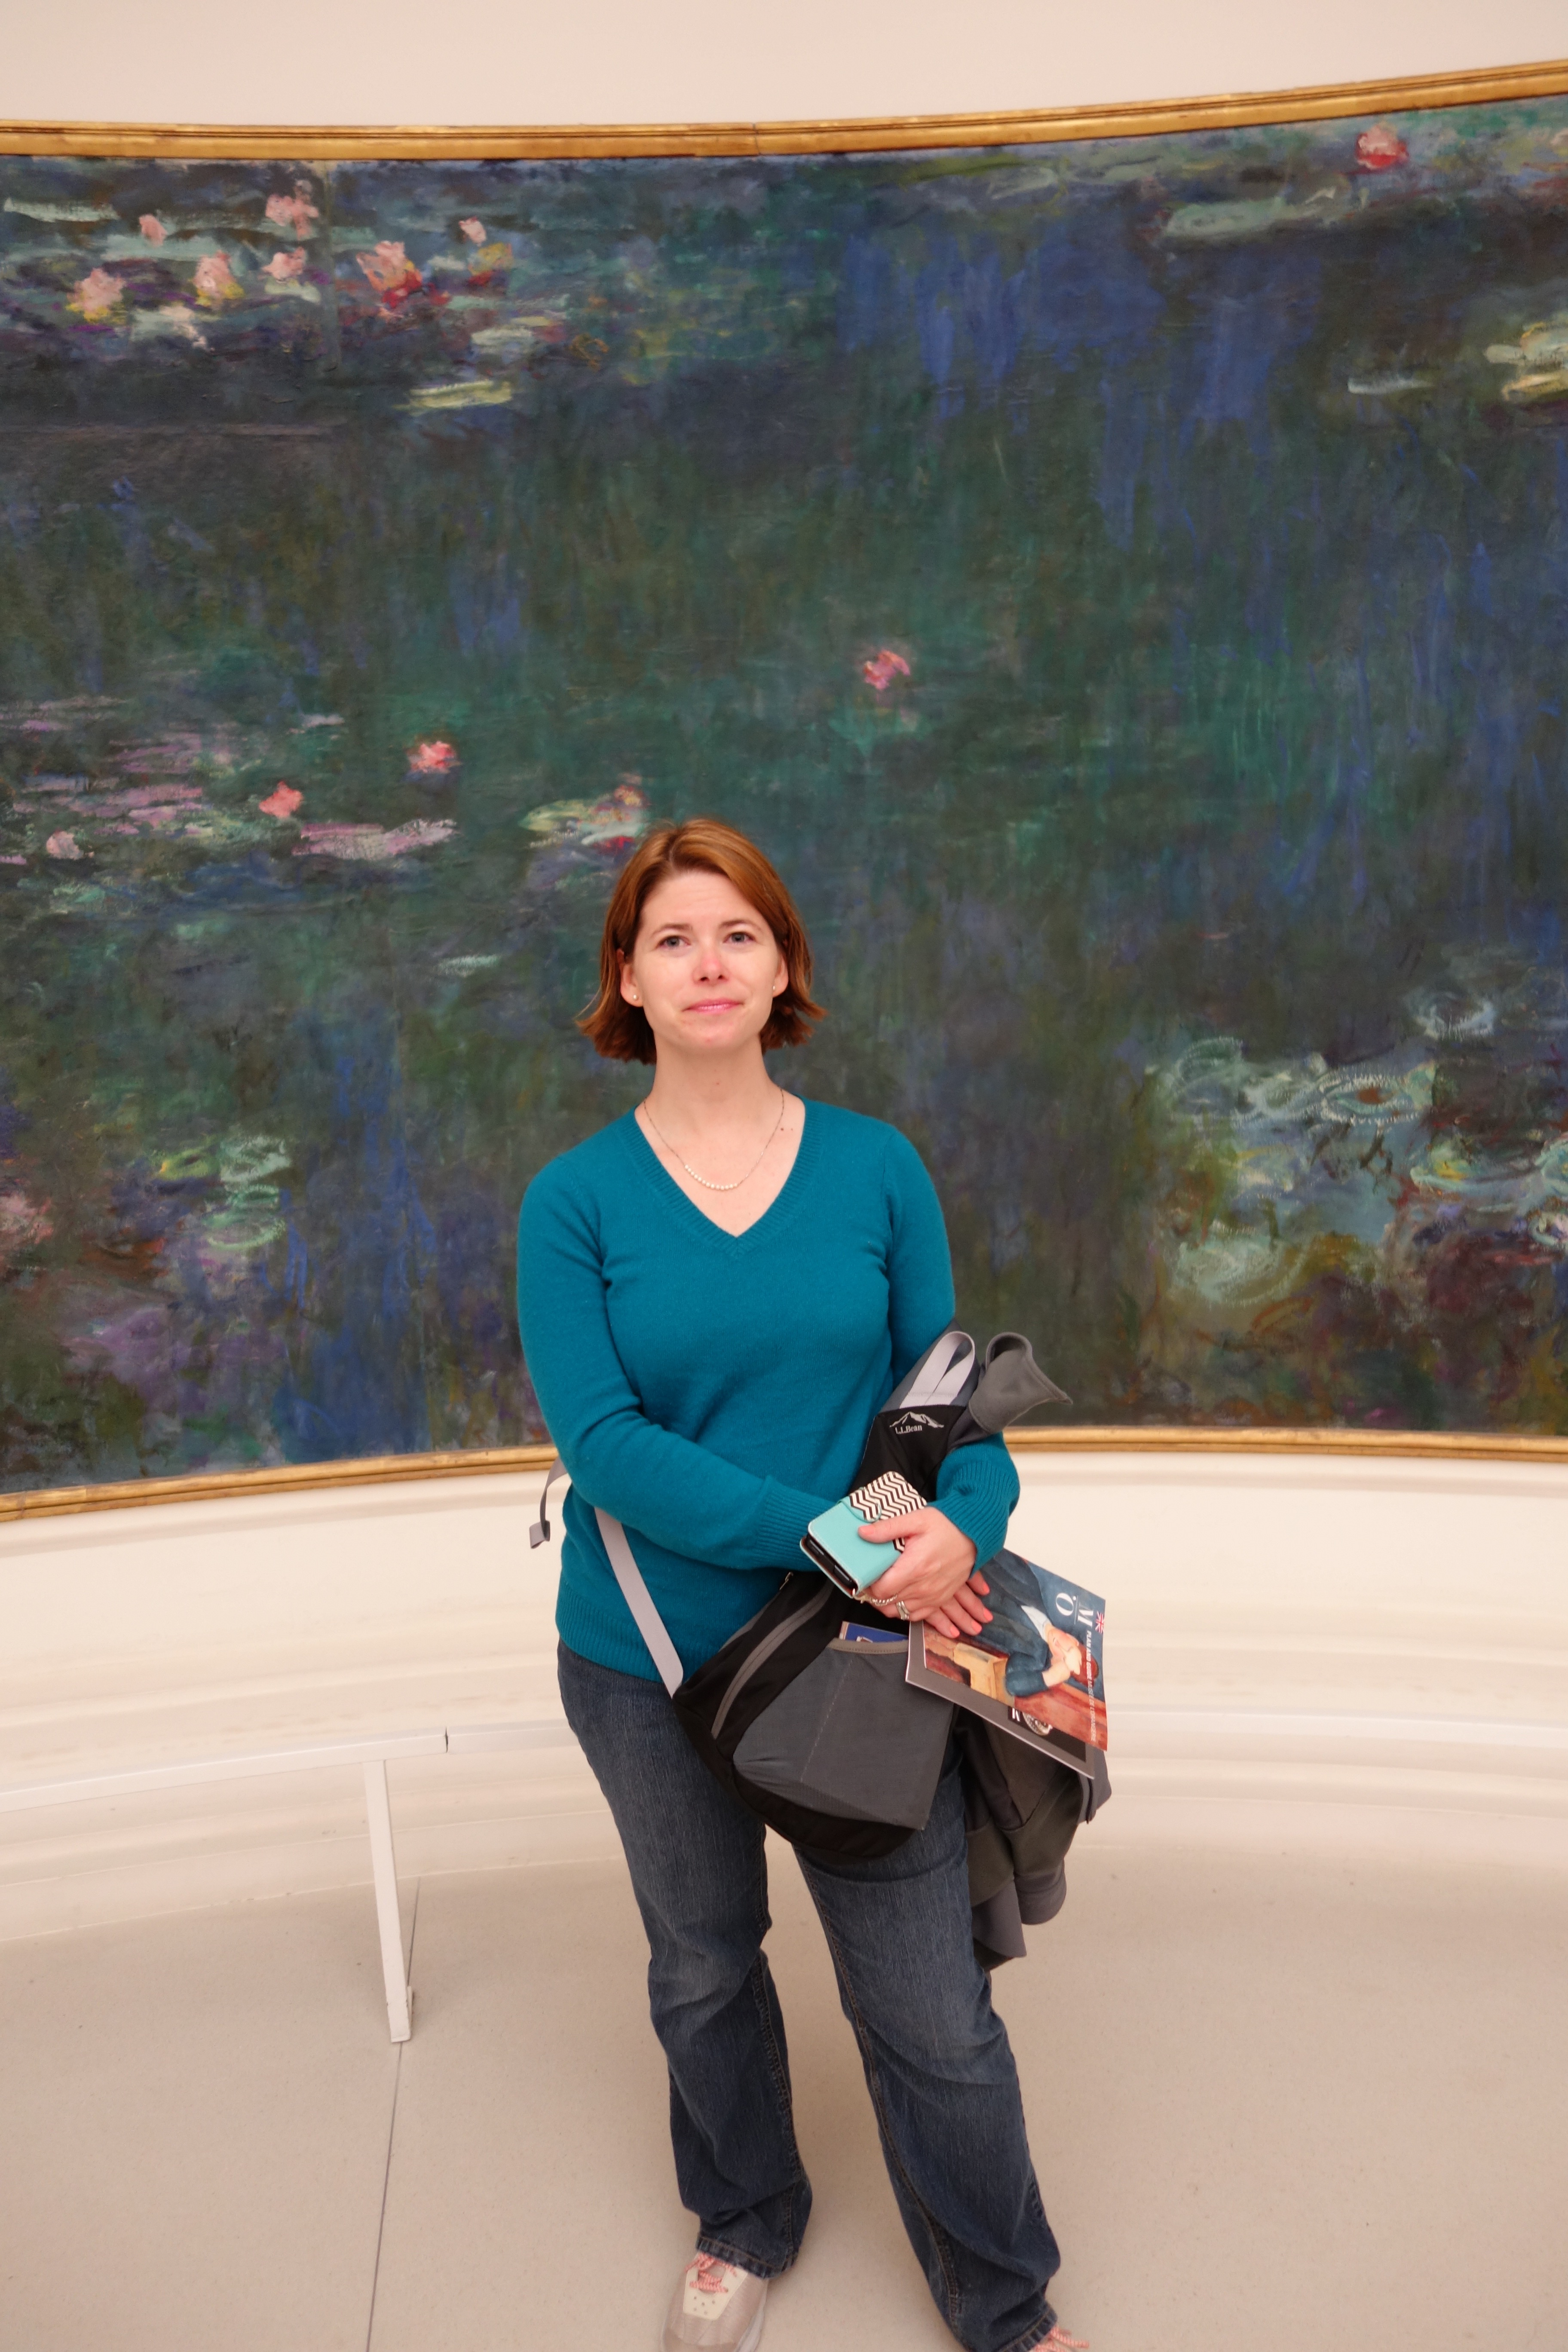 with one of the fabulous waterlily paintings at the Musée de l'Orangerie